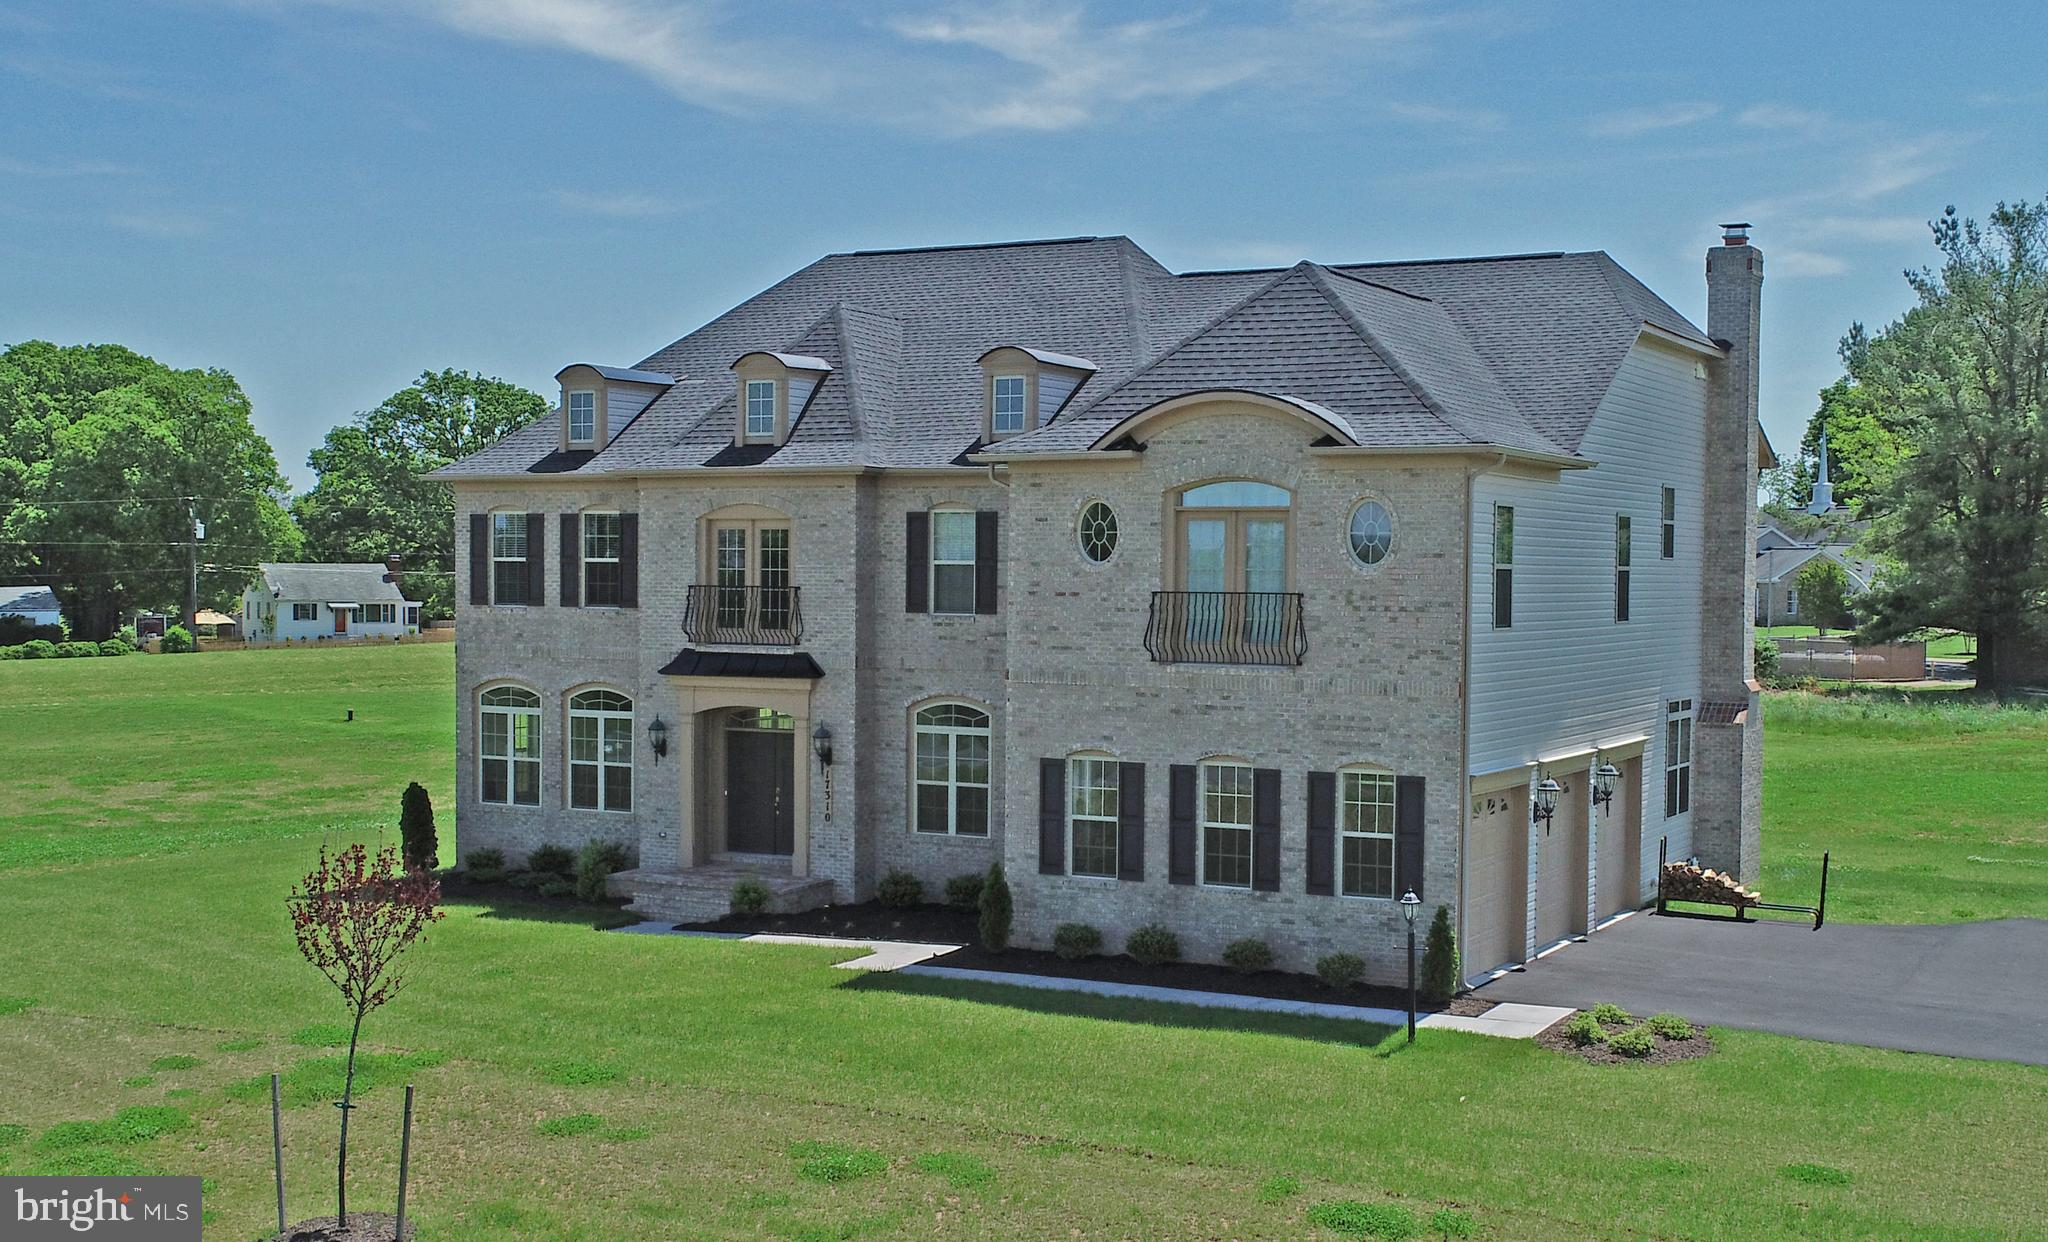 17310 WESTHAM ESTATES COURT, HAMILTON, VA 20158